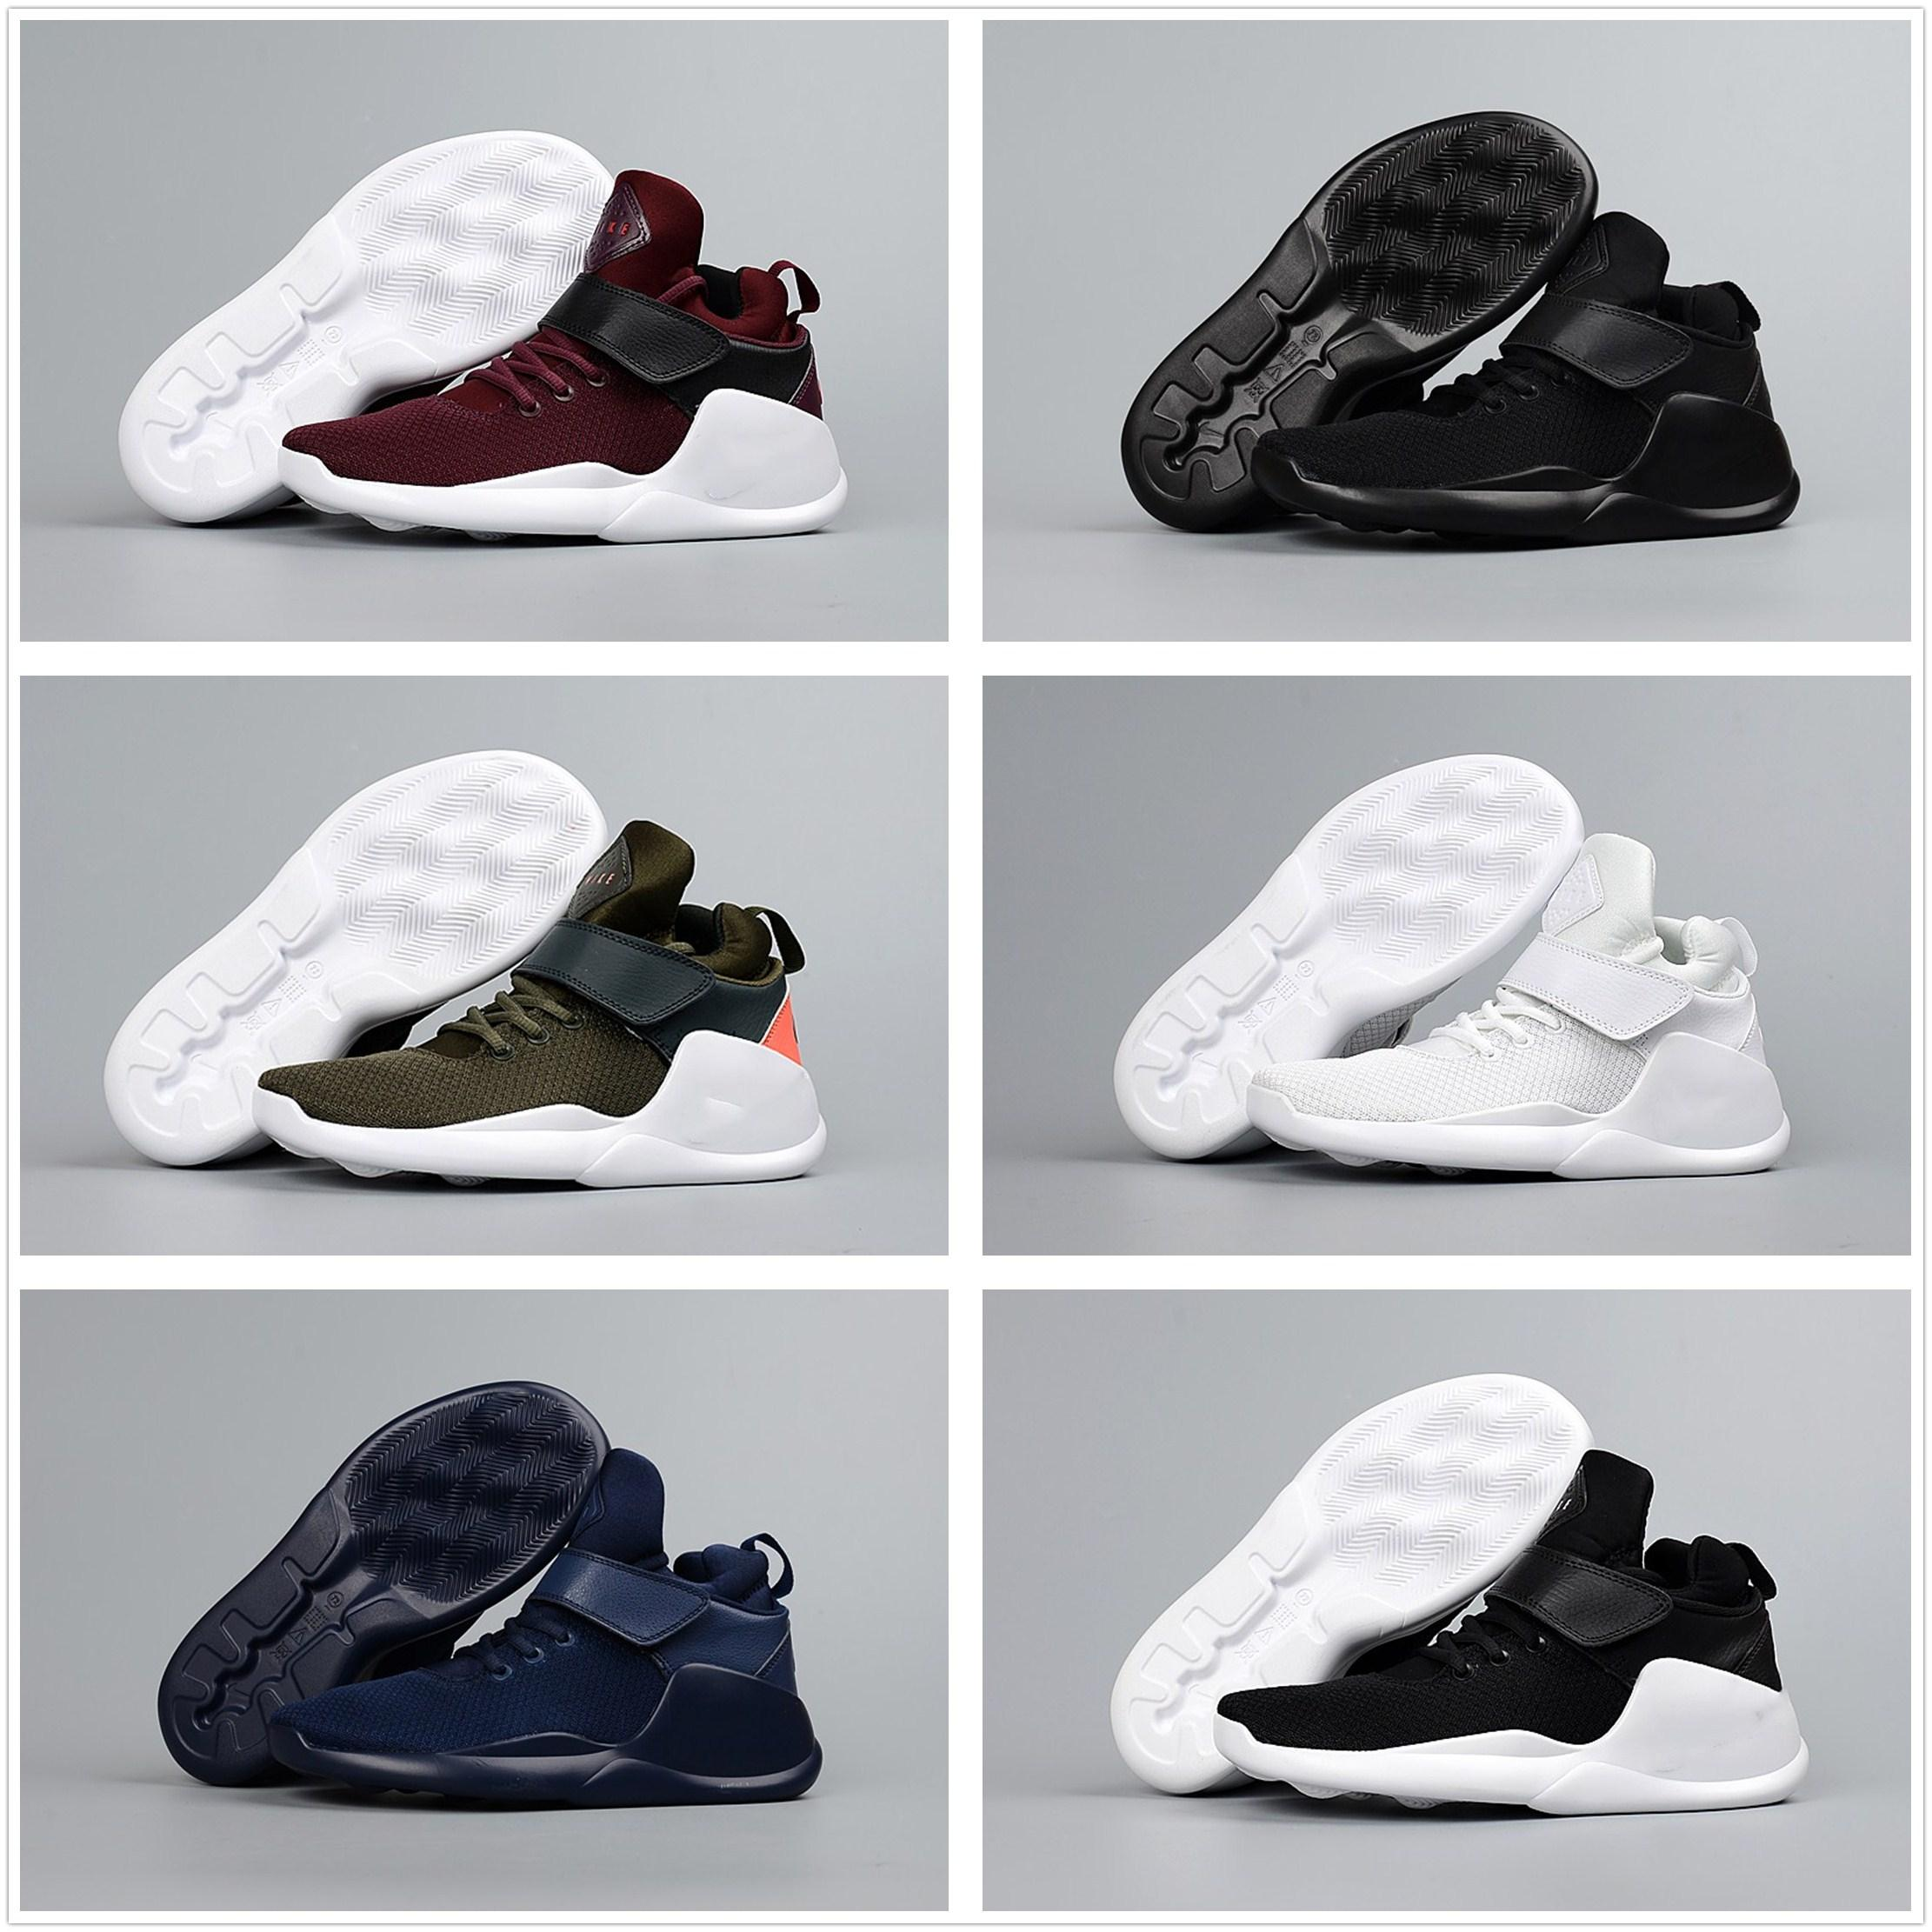 86010 18c1d The Most Expensive Automatic Lace Men Women Air Mag Sneakers  Marty McFly Shoes Back ... d17dd7811